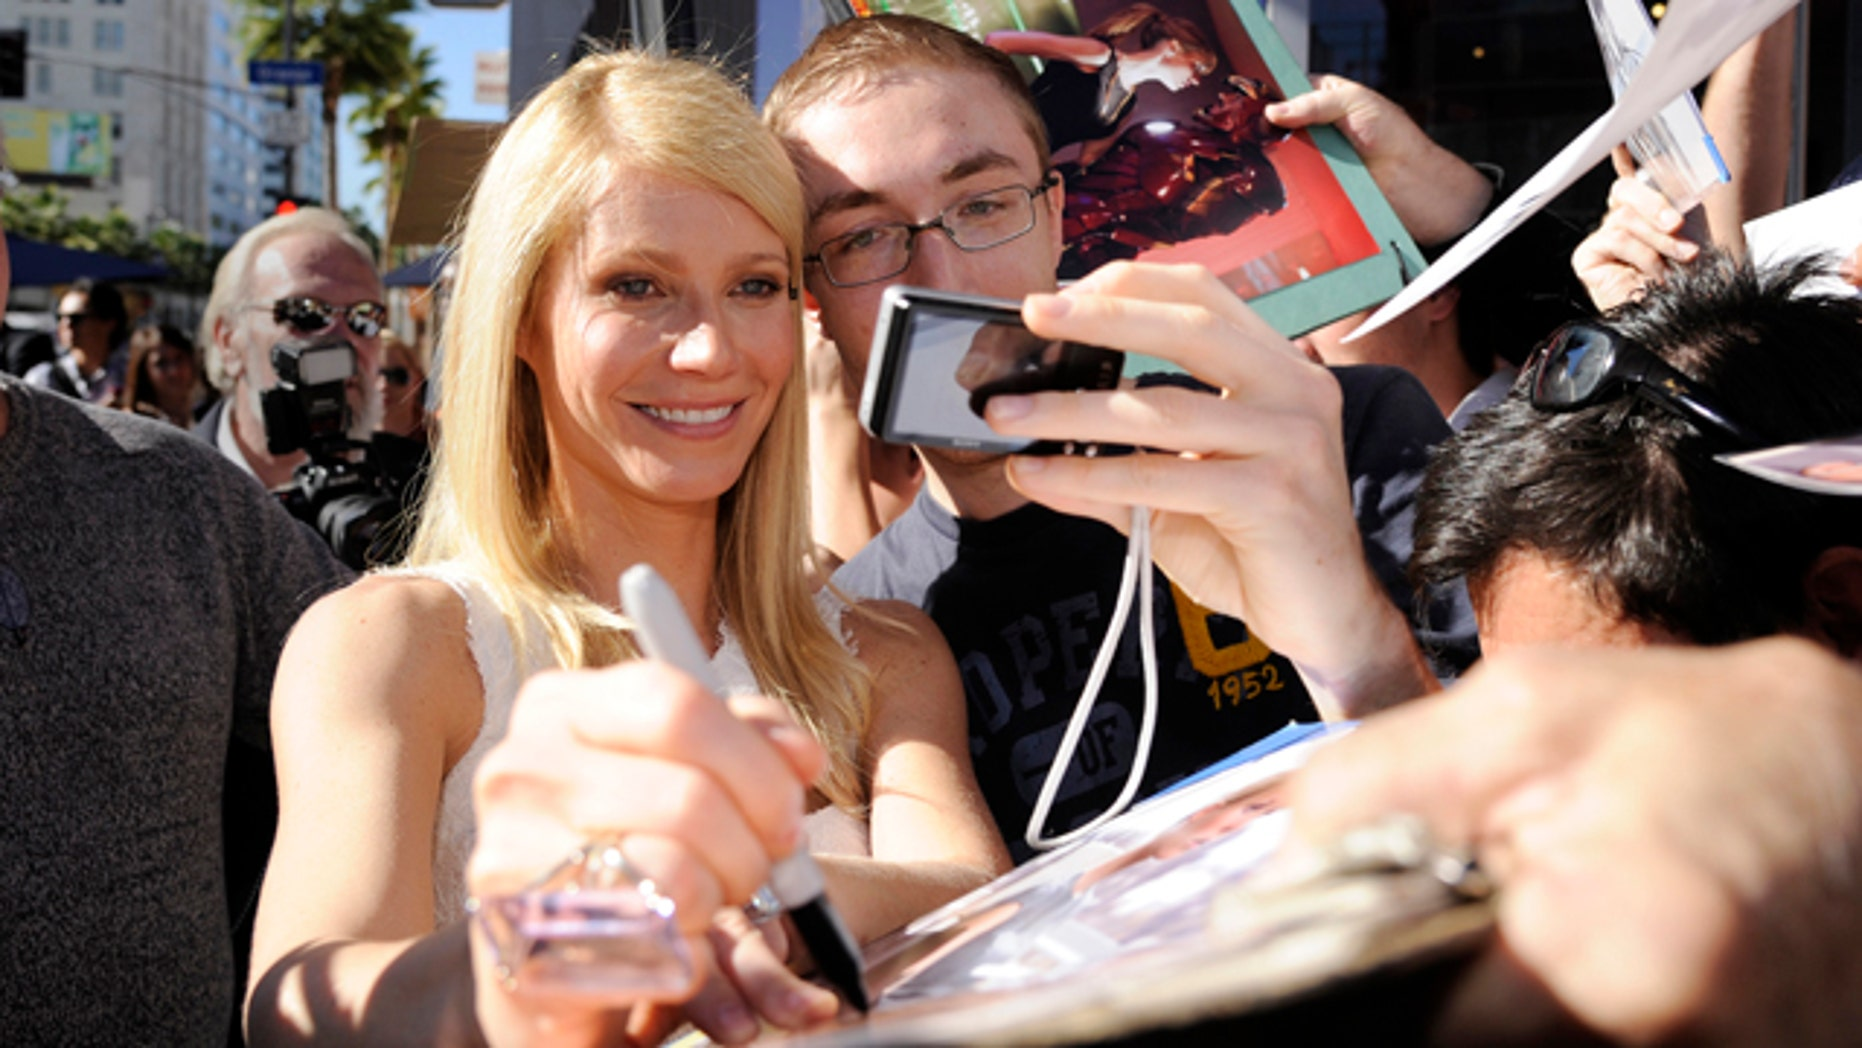 Gwyneth Paltrow signs autographs following a ceremony where the actress received a star on the Hollywood Walk of Fame in Los Angeles December 13, 2010. REUTERS/Phil McCarten